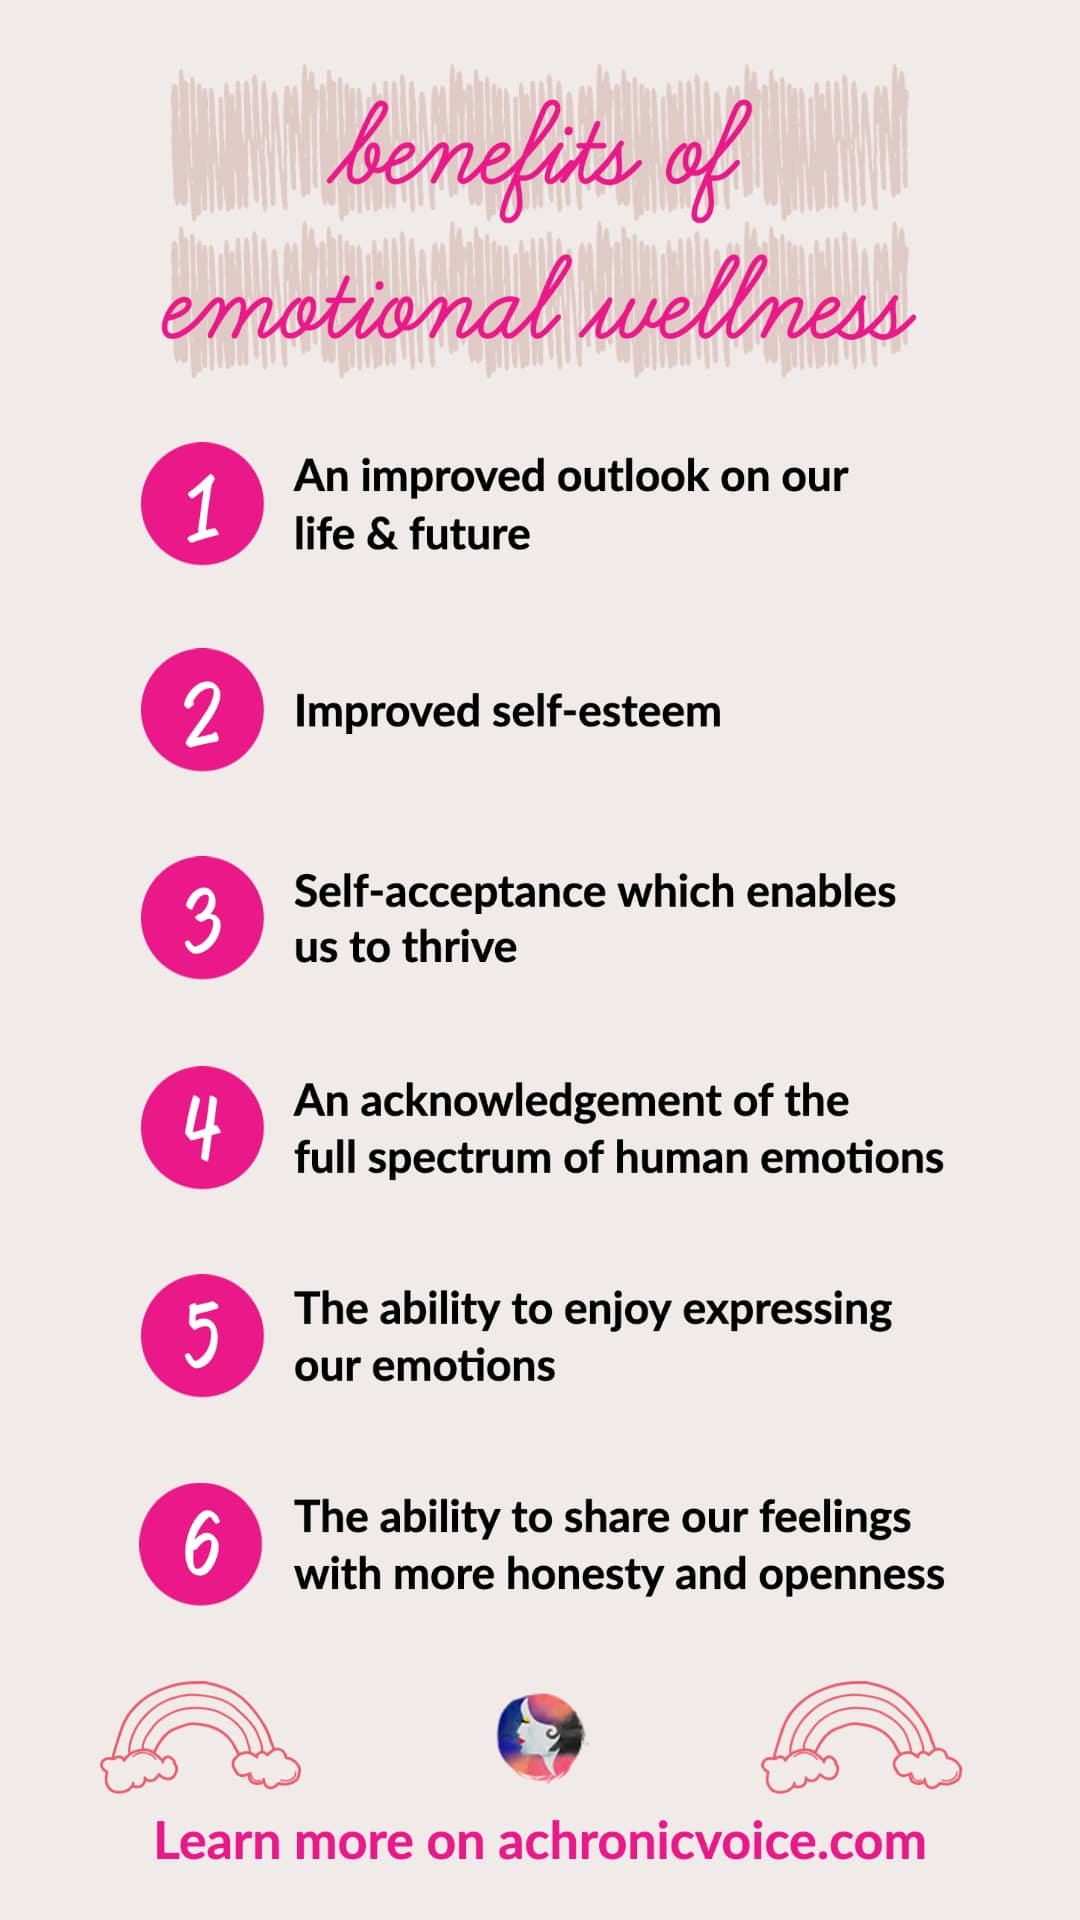 The Benefits of Emotional Wellness